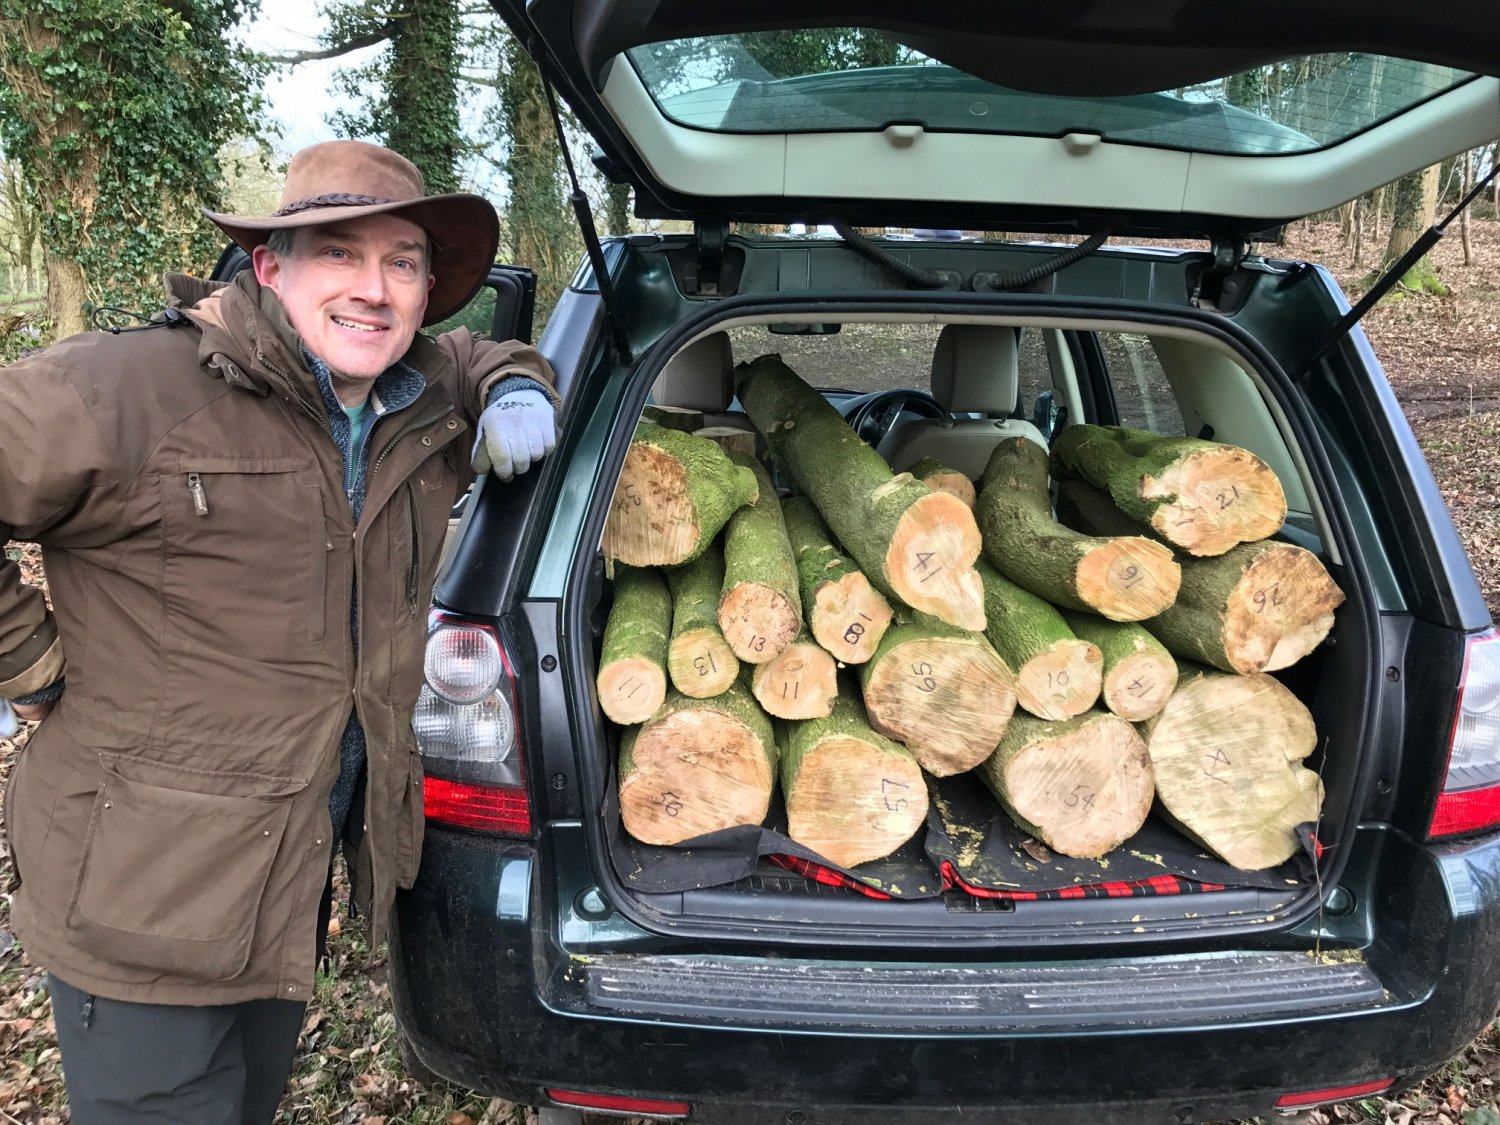 Huw with car load of boxwood